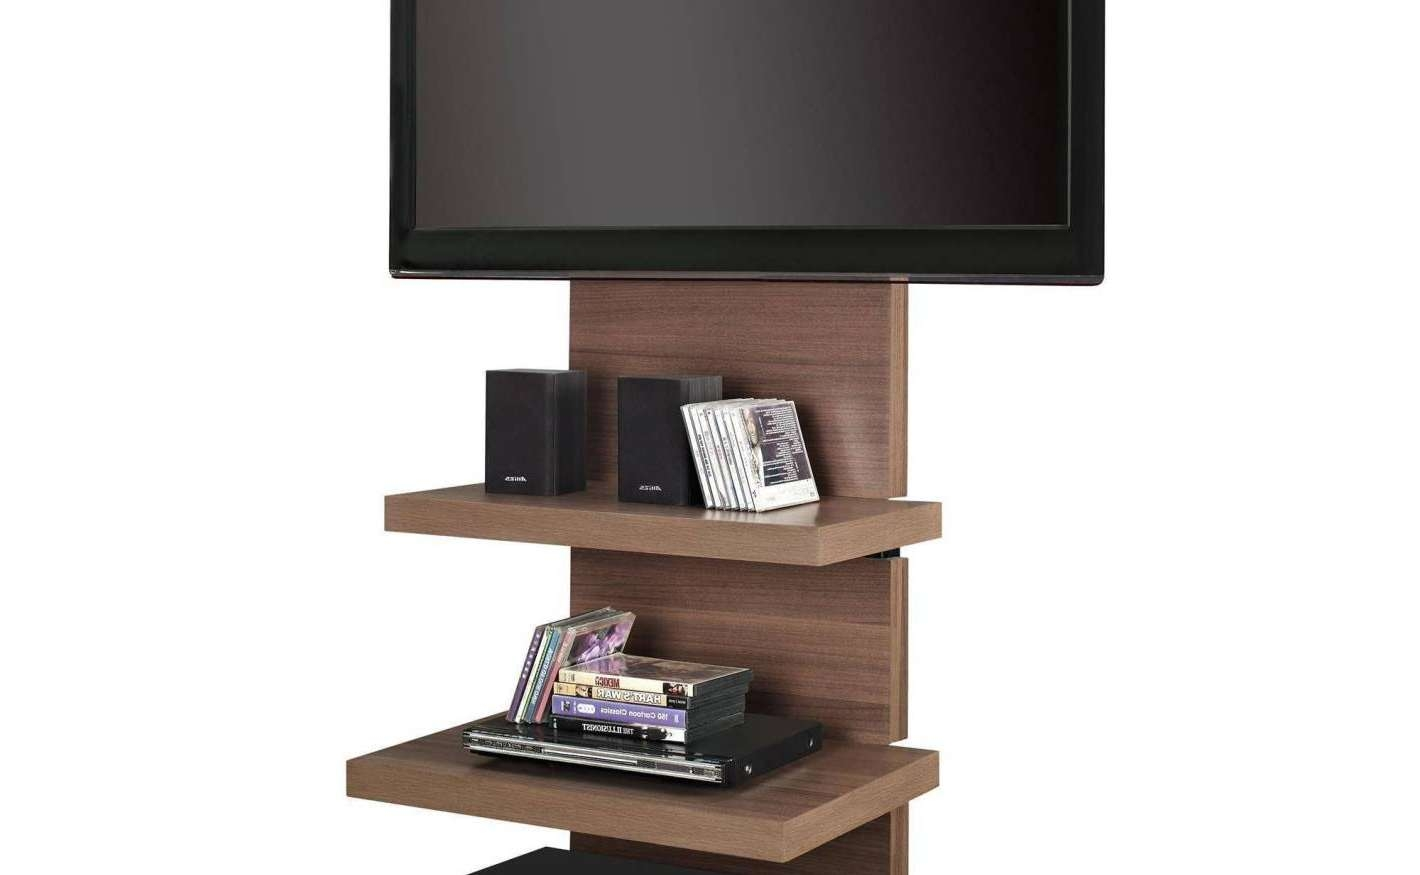 Tv : Exquisite 65 Inch Tv Stands With Integrated Mount Interesting In 65 Inch Tv Stands With Integrated Mount (View 4 of 15)